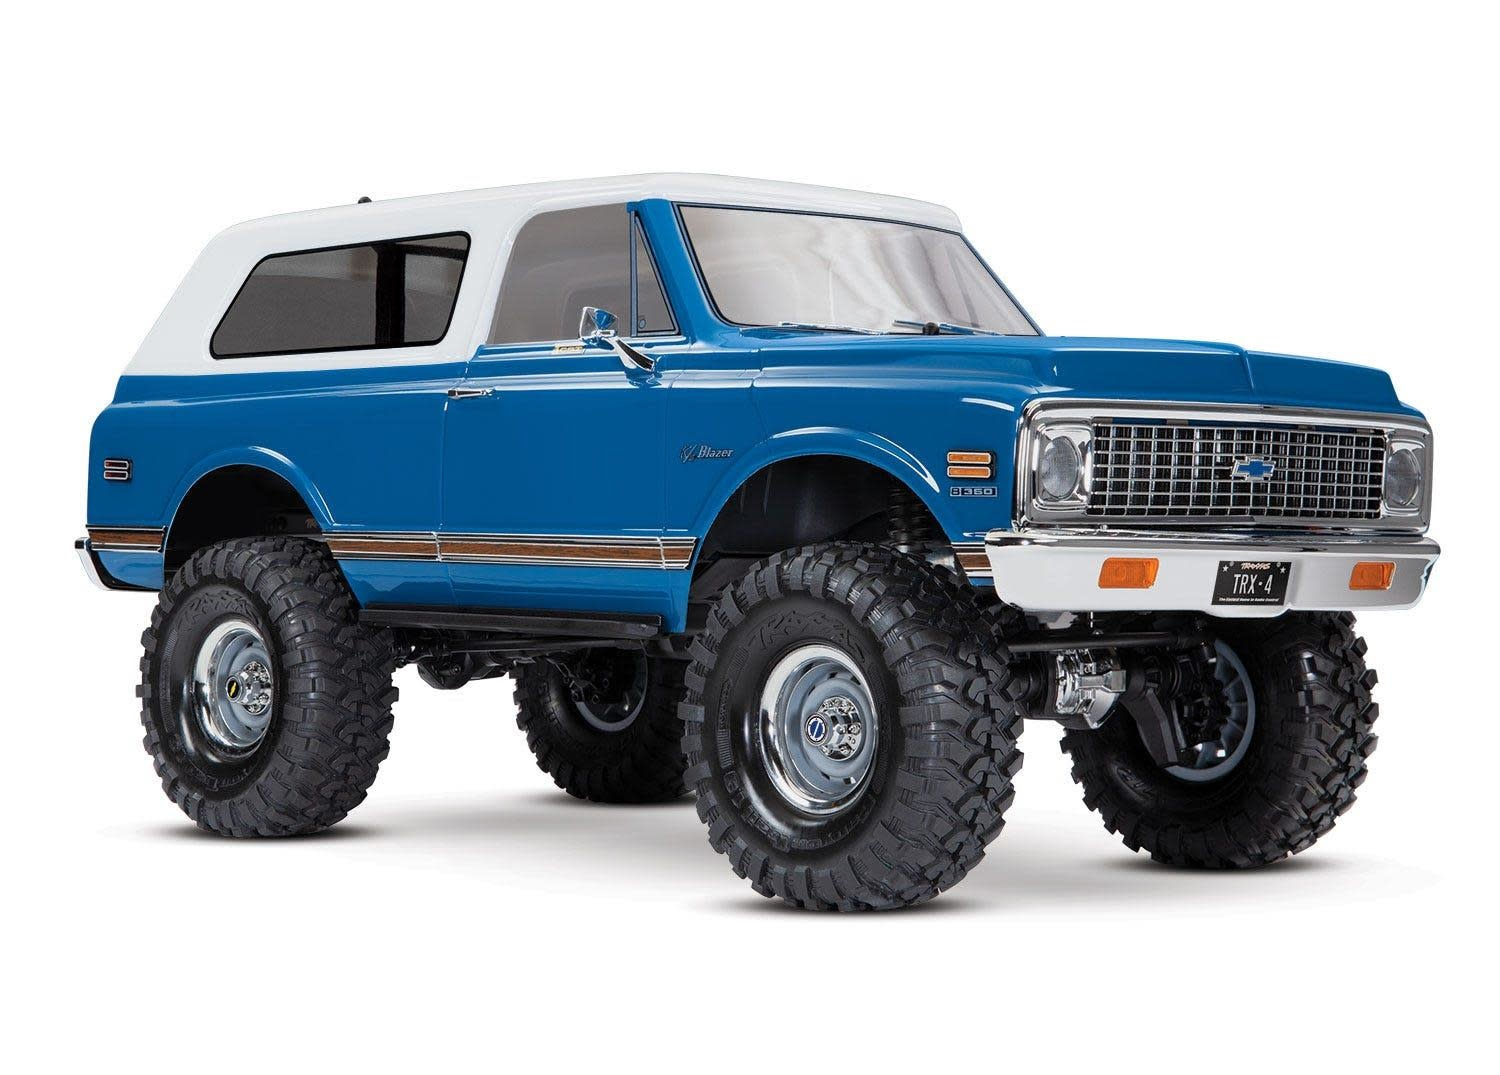 Body, Chevrolet Blazer (1972), complete (blue) (includes grille, side mirrors, door handles, windshield wipers, front & rear bumpers, decals)-1